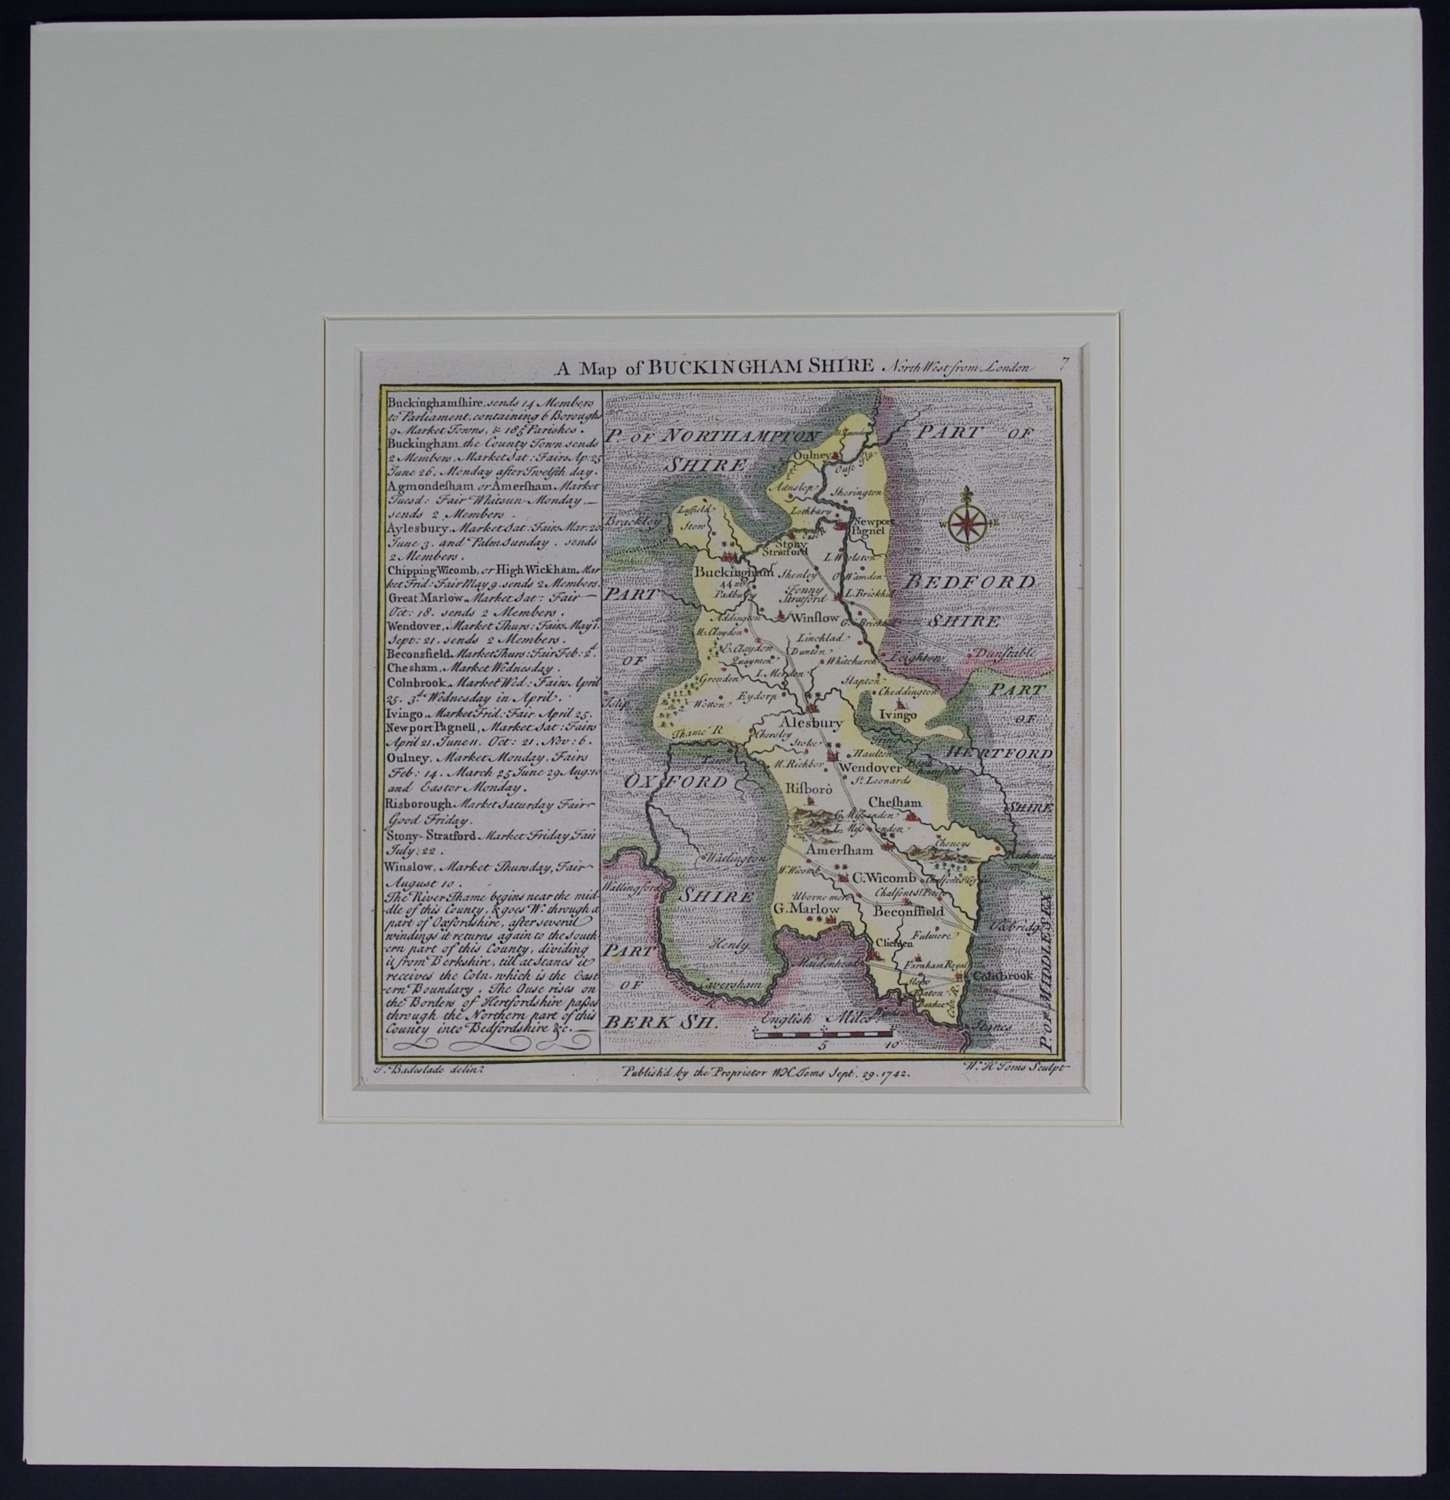 A Map of Buckinghamshire by Thomas Badeslade